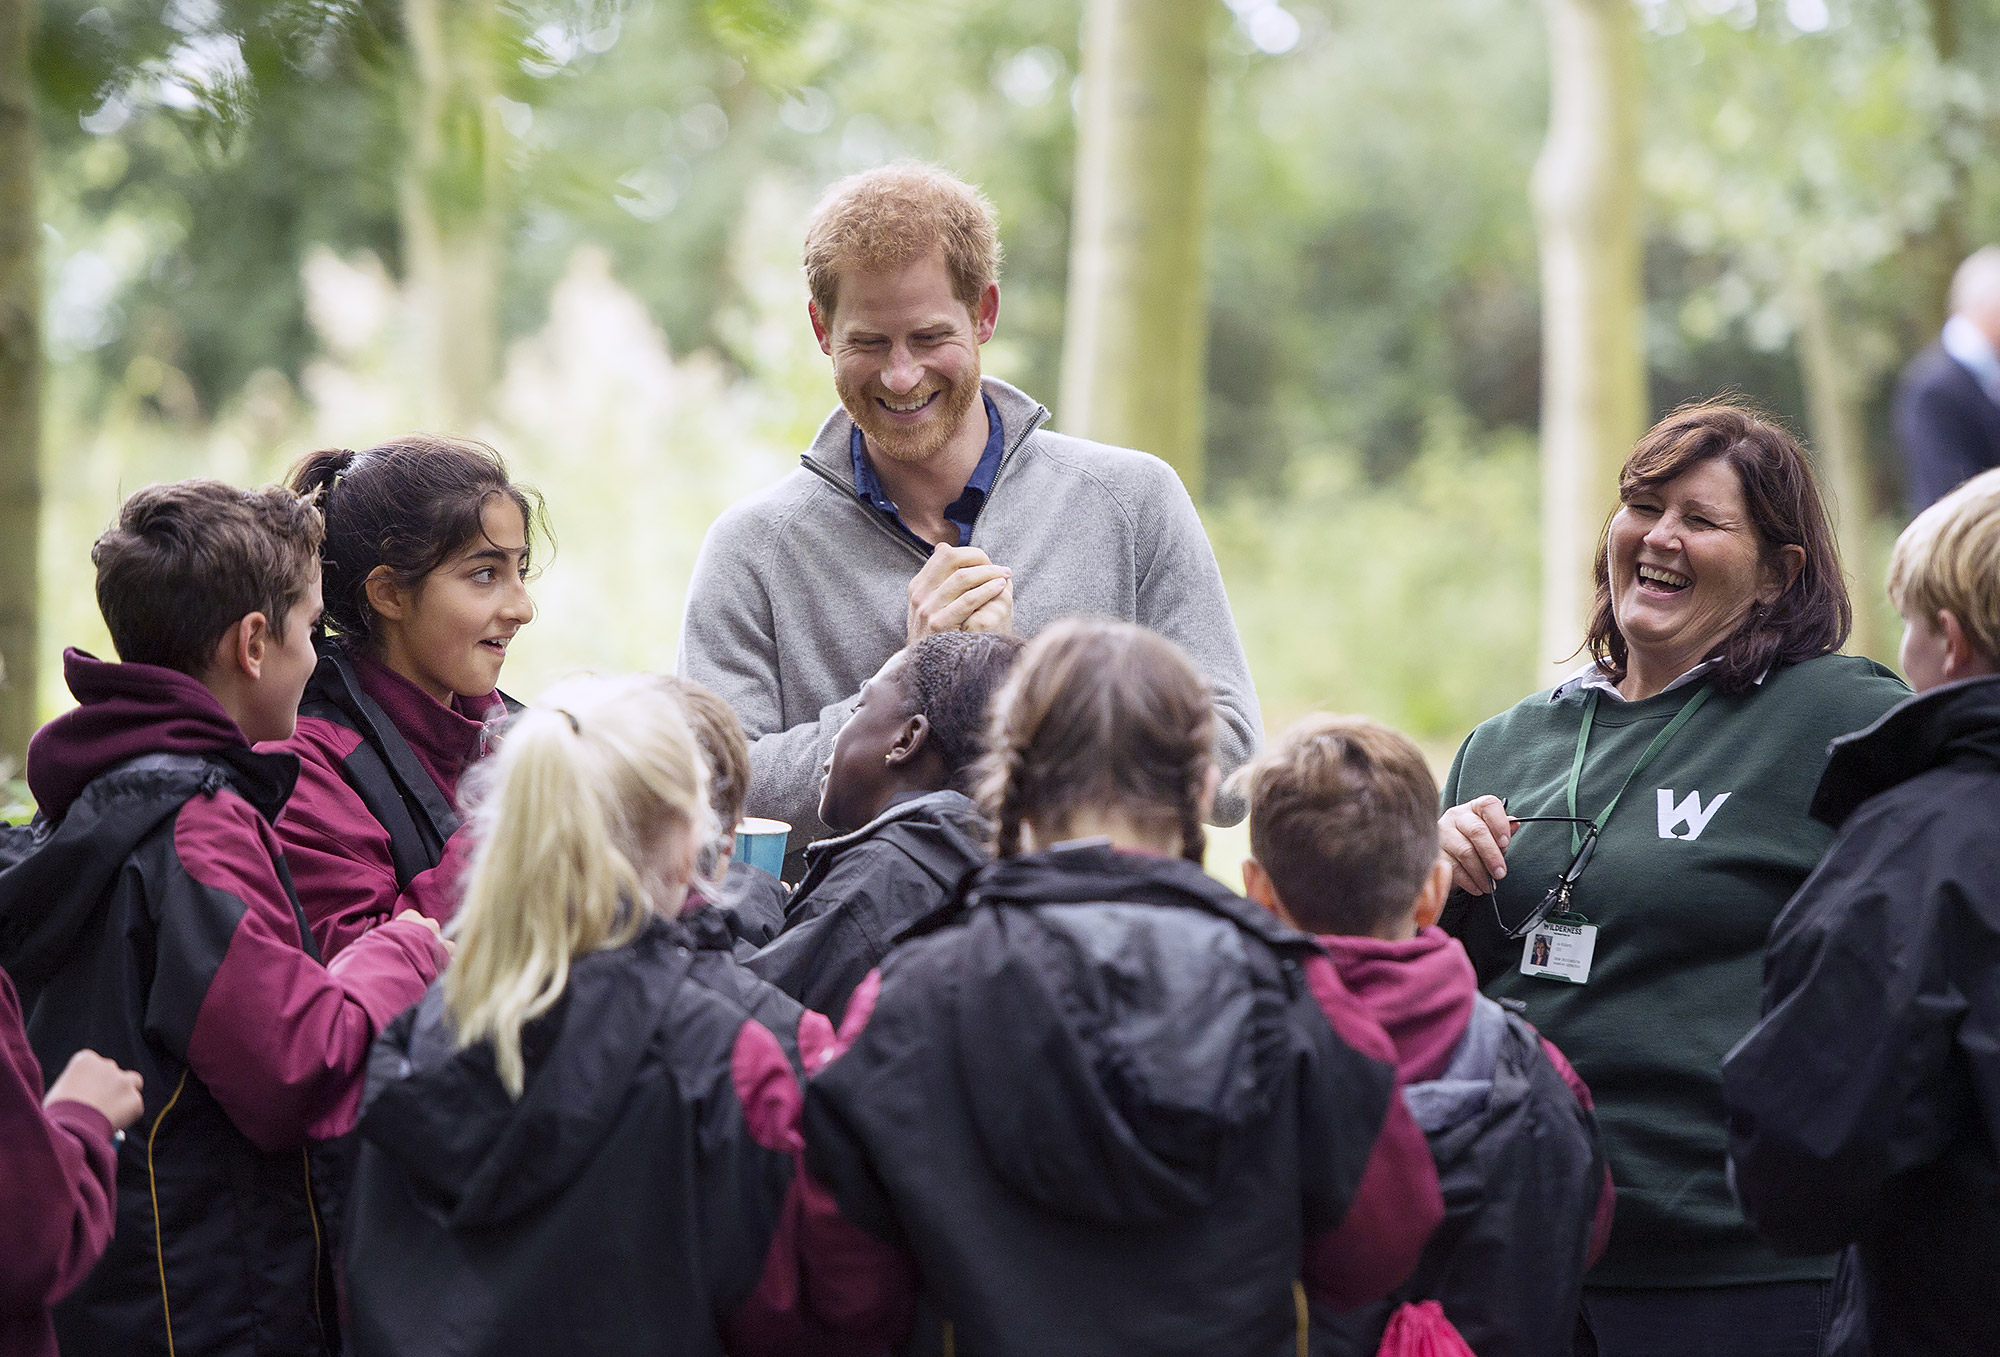 Prince Harry visits The Chatham Green Project, Essex, UK - 14 Sep 2017